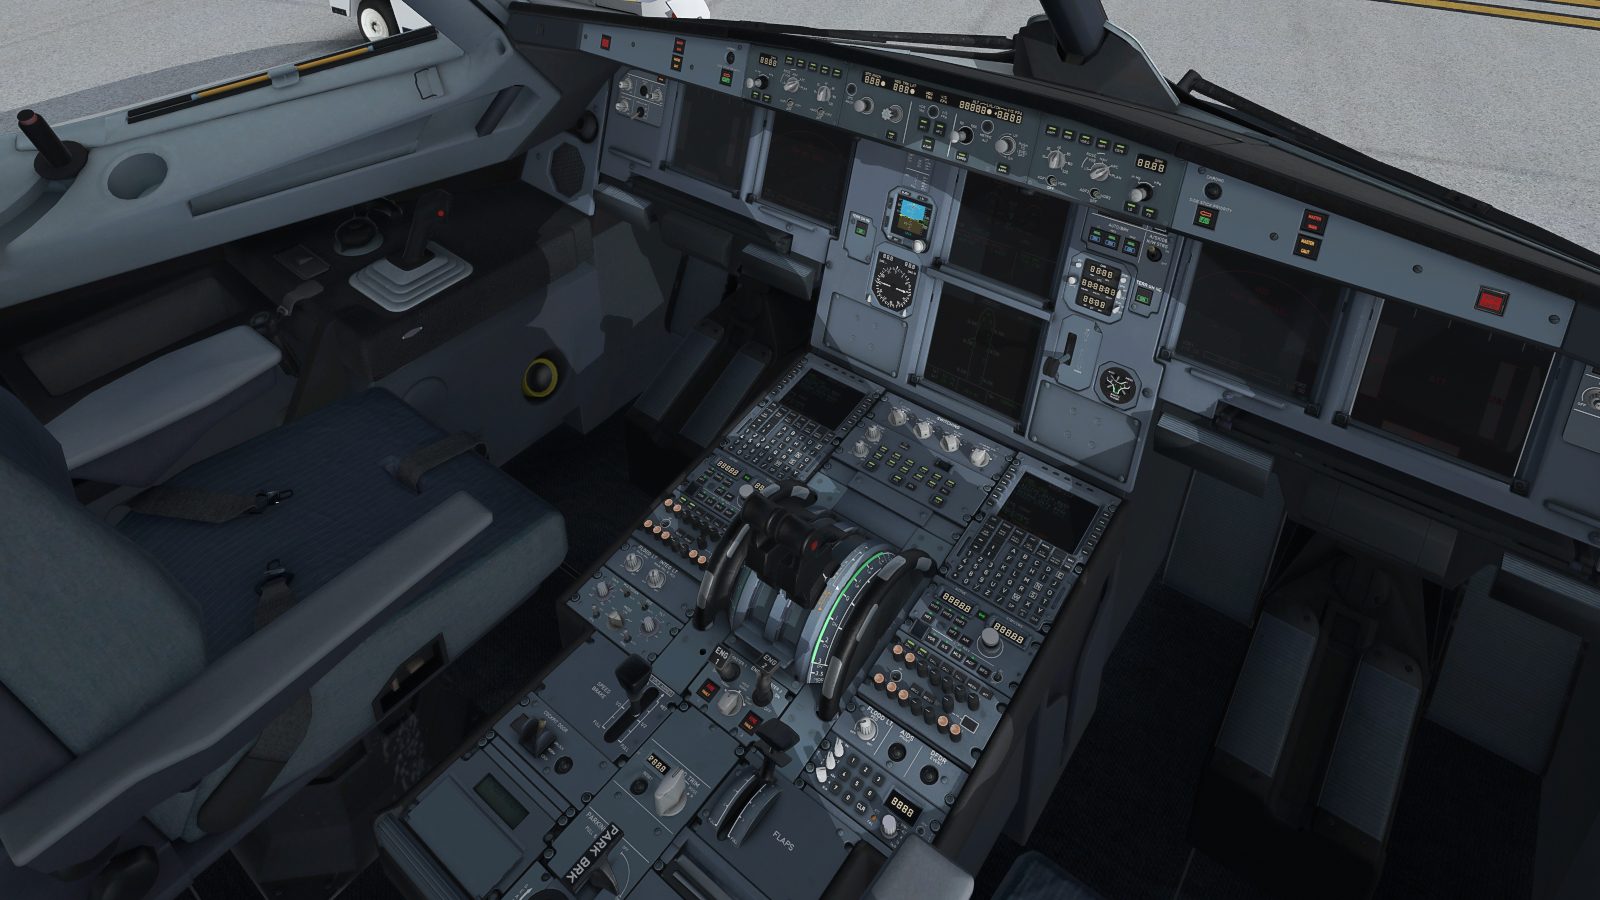 https://forums.x-plane.org/screenshots/monthly_2019_02/743640635_X-Plane2019-02-1121-31-0505.png.058bbf2d237a644a1c0beff31d2f48db.png